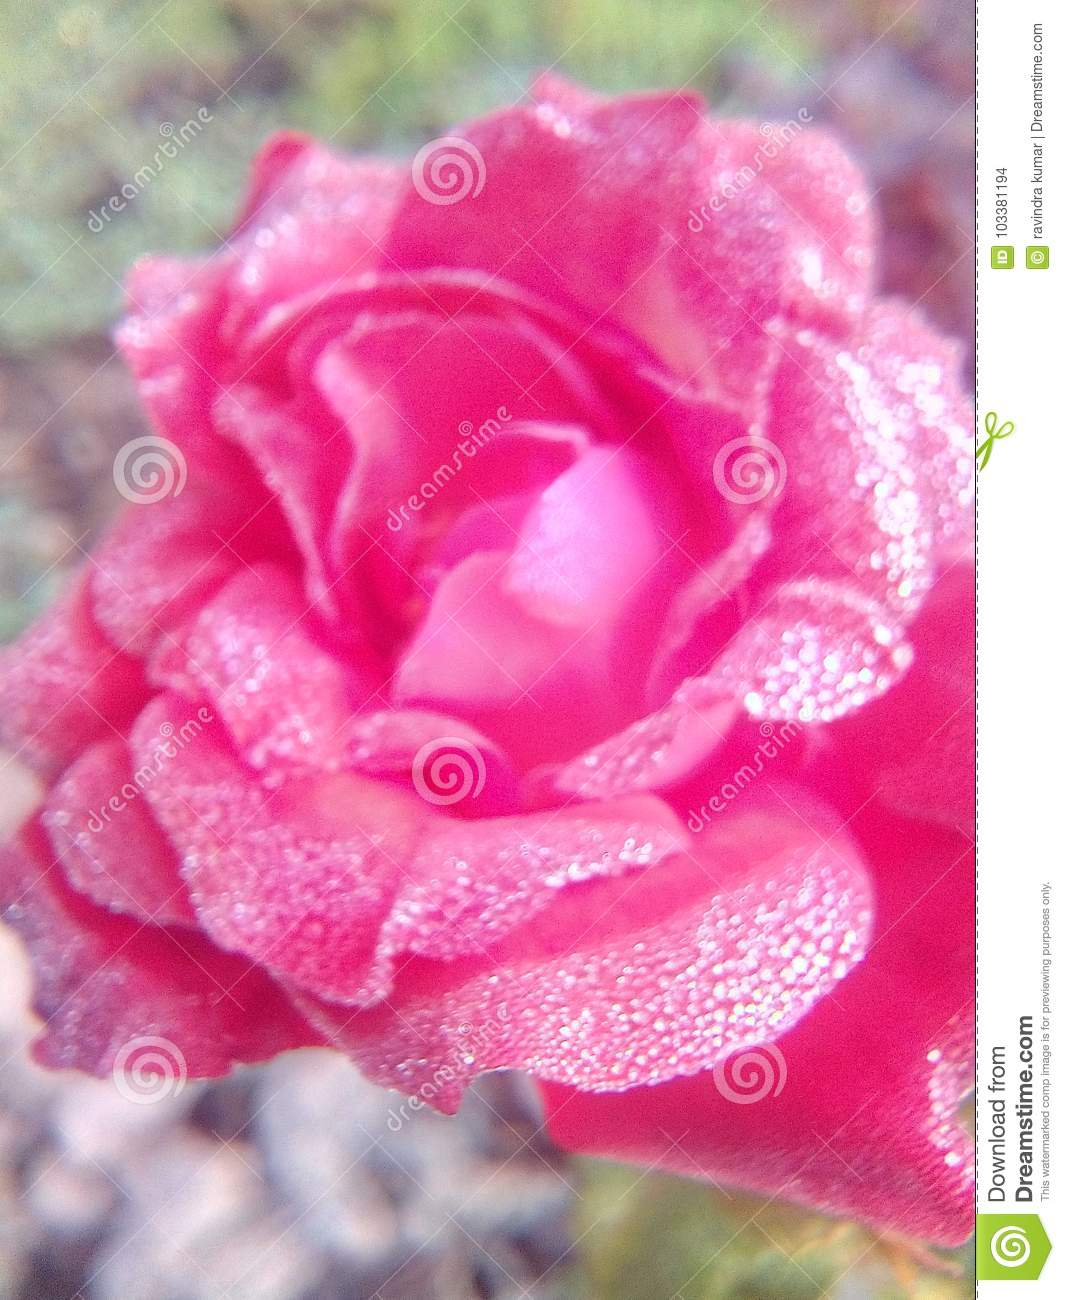 Rose flowers very good beautiful nice romantic love lovely colors royalty free stock photo download rose flowers very good beautiful izmirmasajfo